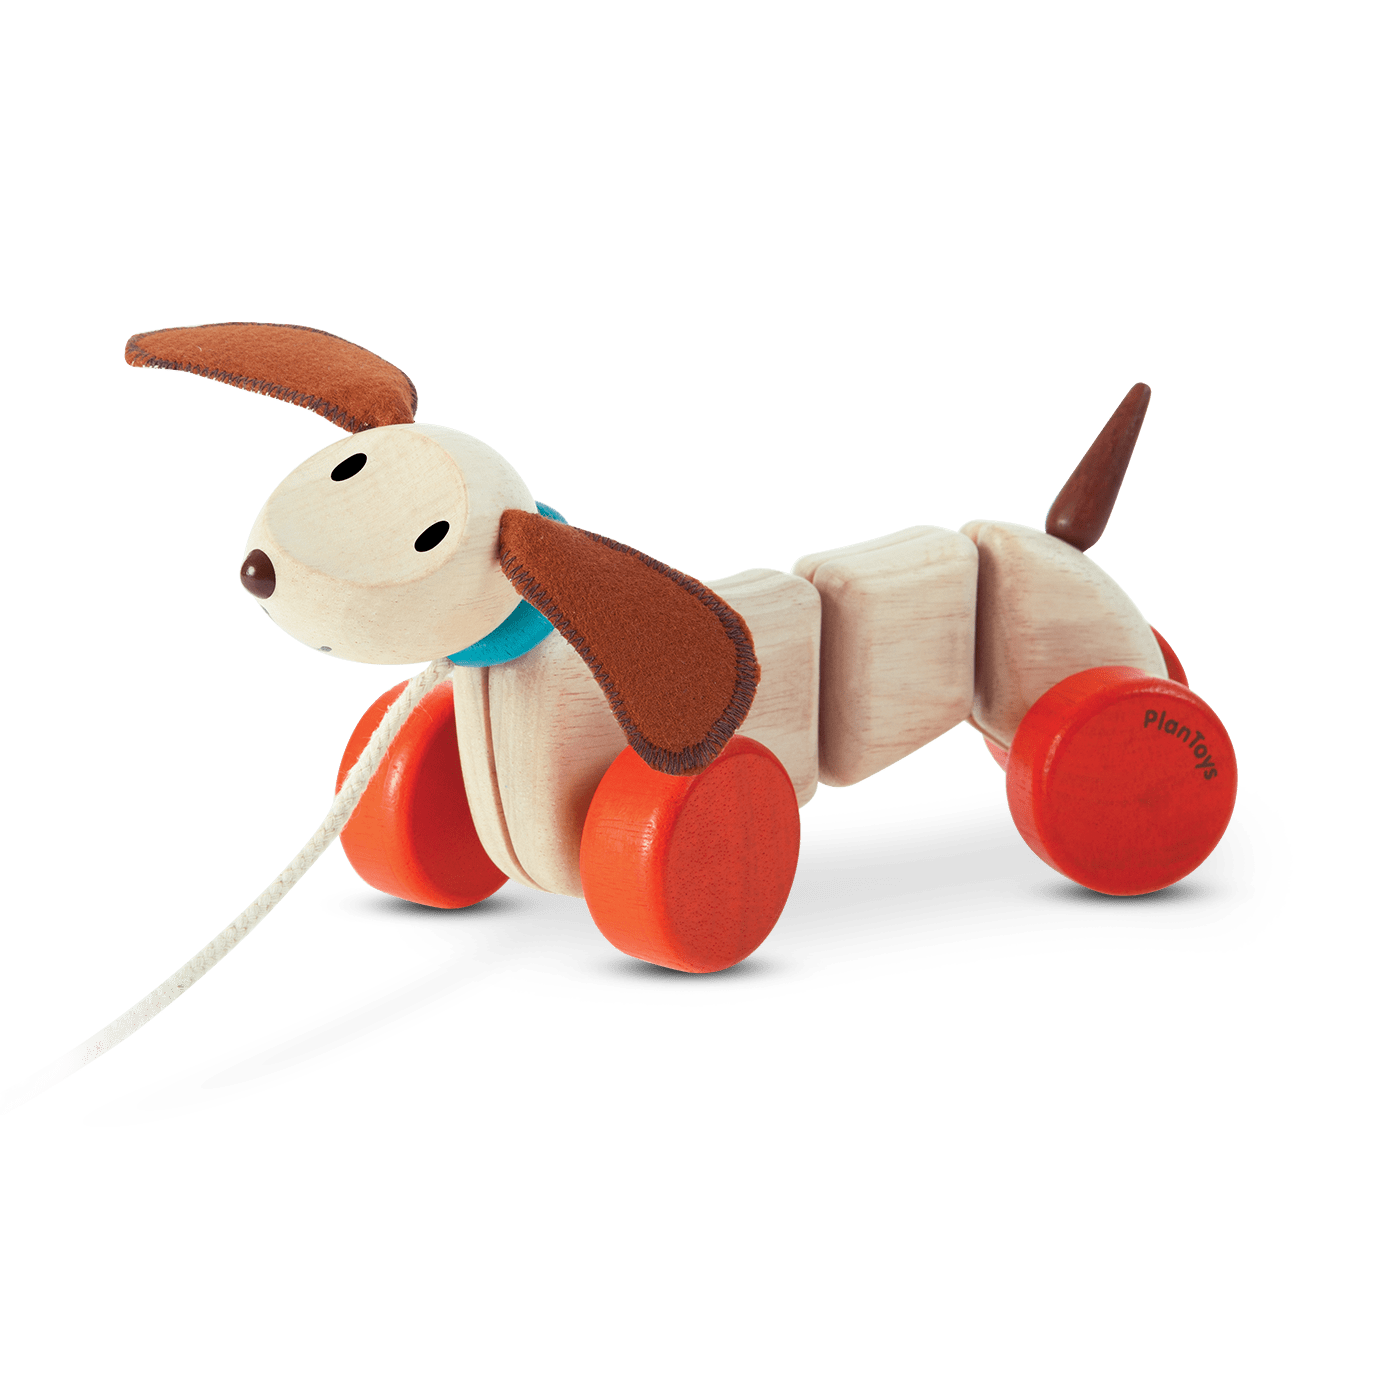 5101_PlanToys_HAPPY_PUPPY_Push_and_Pull_Gross_Motor_Coordination_Imagination_12m_Wooden_toys_Education_toys_Safety_Toys_Non-toxic_0.png